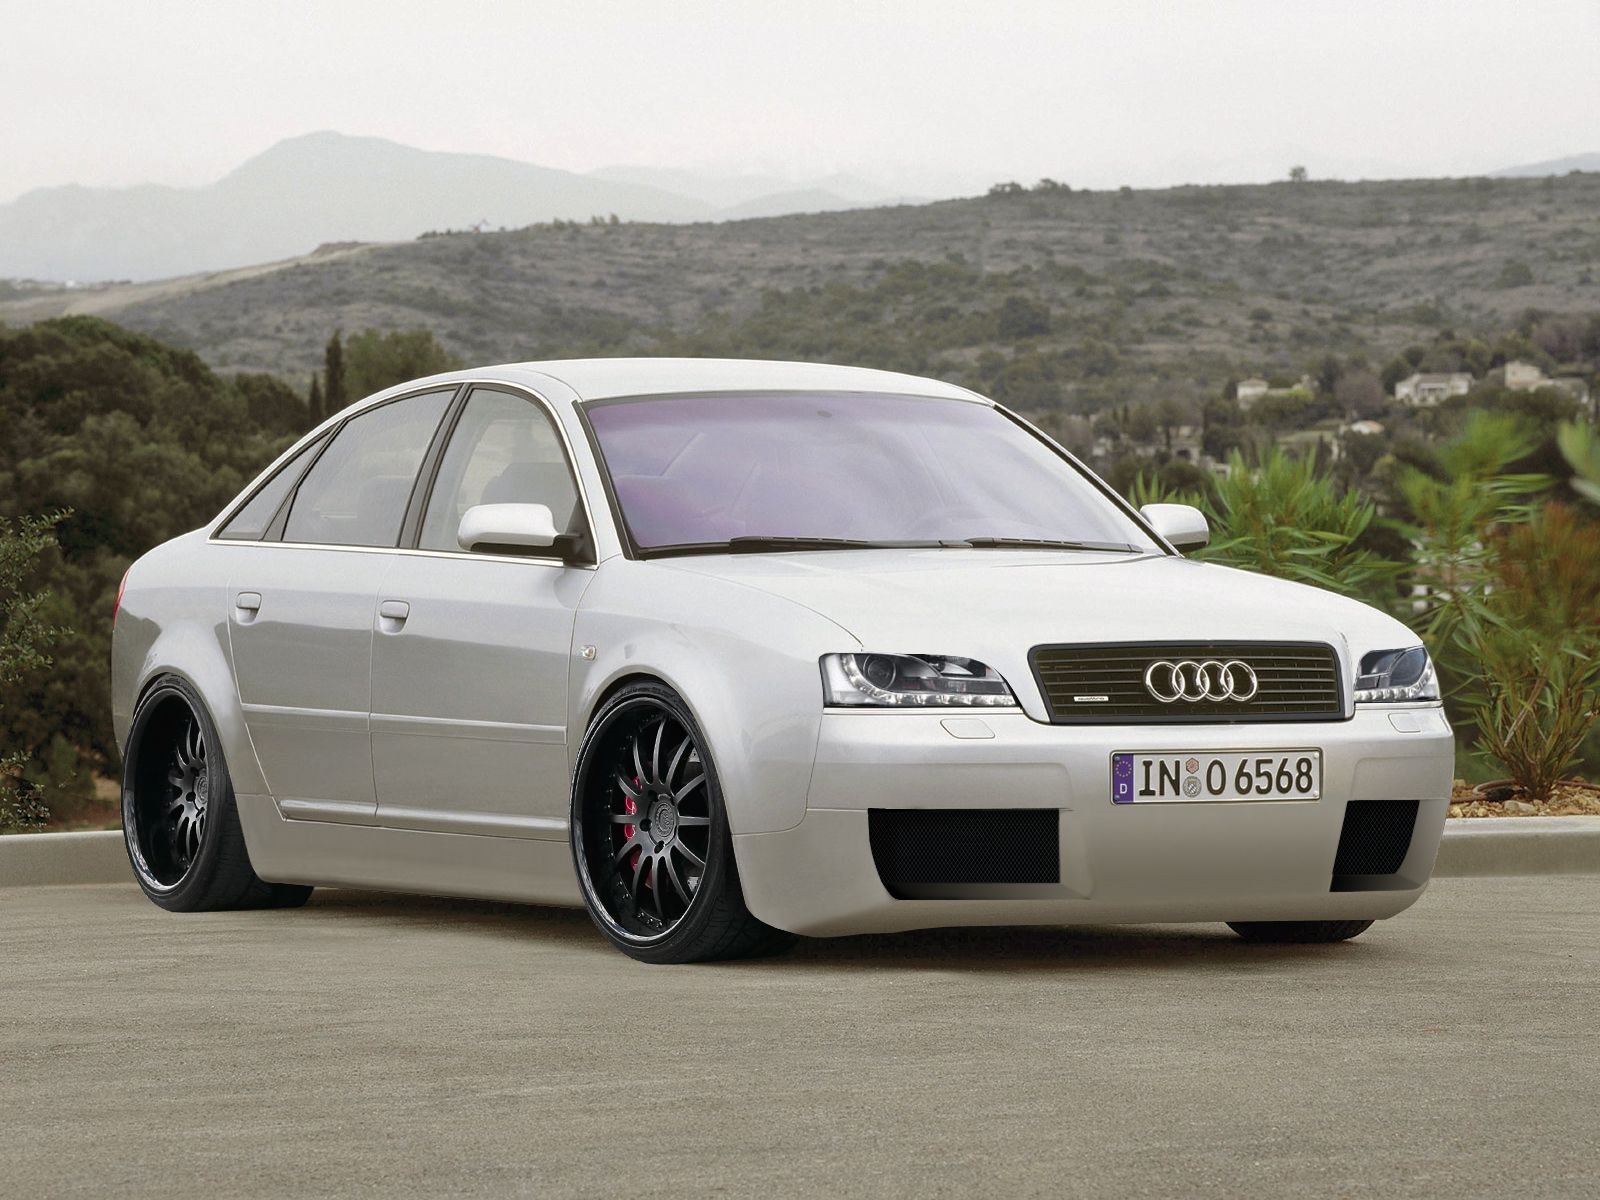 audi a6 2002 tuning audi a6 tuning related images 301 to 350 zuoda images audi a6. Black Bedroom Furniture Sets. Home Design Ideas